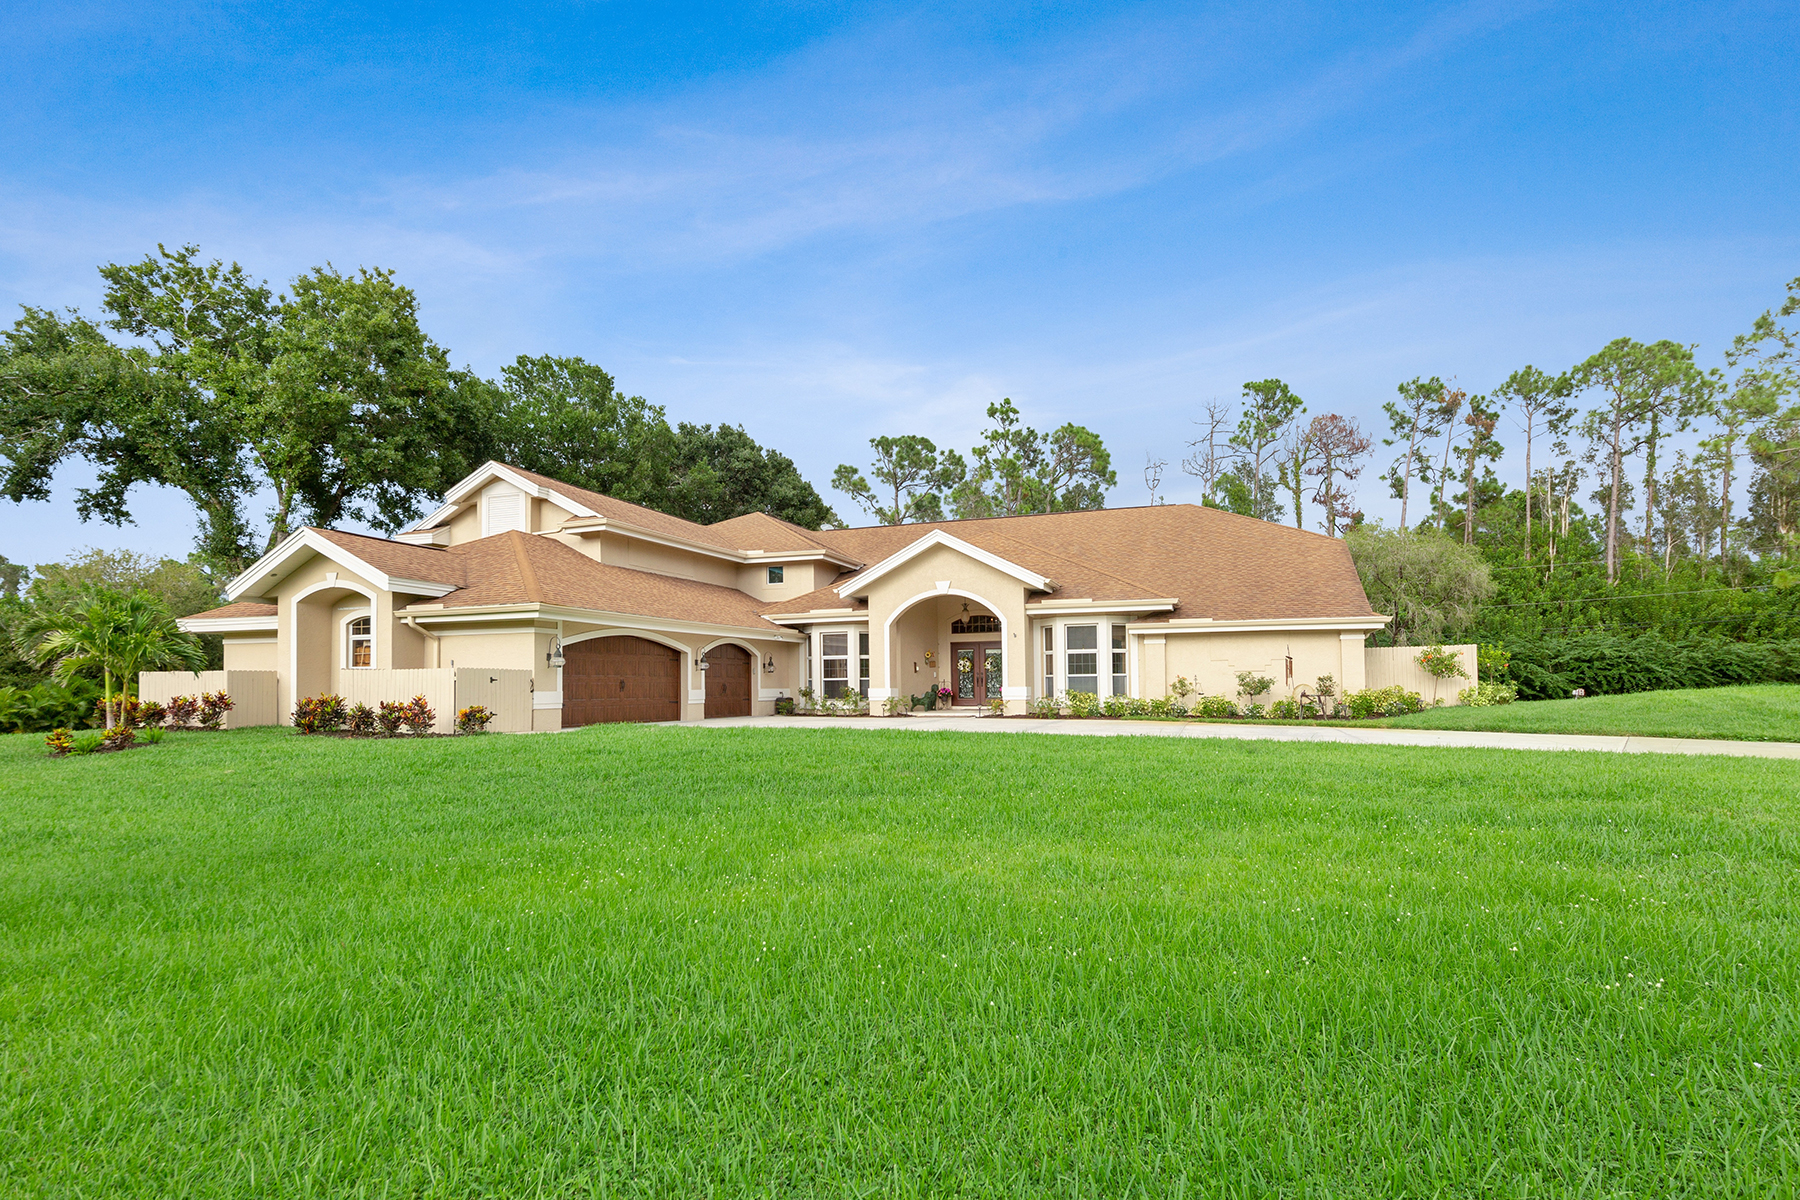 Single Family Homes for Sale at BRIARCLIFF DOWNS 15751 Triple Crown Court Fort Myers, Florida 33912 United States